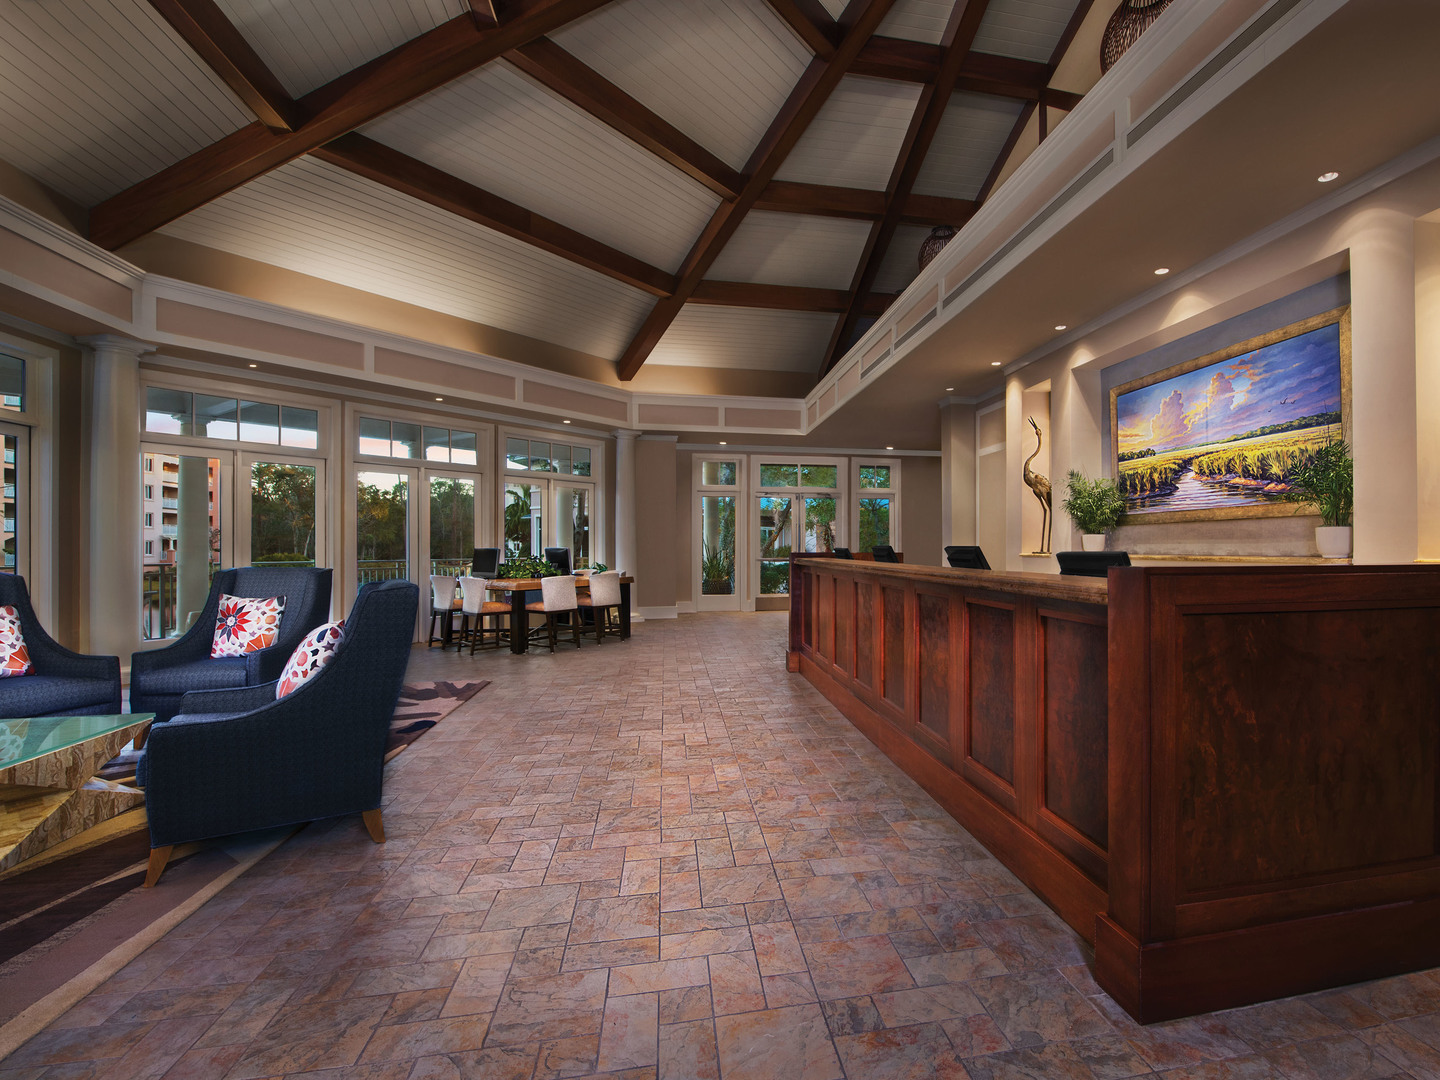 Marriott's SurfWatch<span class='trademark'>®</span> Lobby. Marriott's SurfWatch<span class='trademark'>®</span> is located in Hilton Head Island, South Carolina United States.